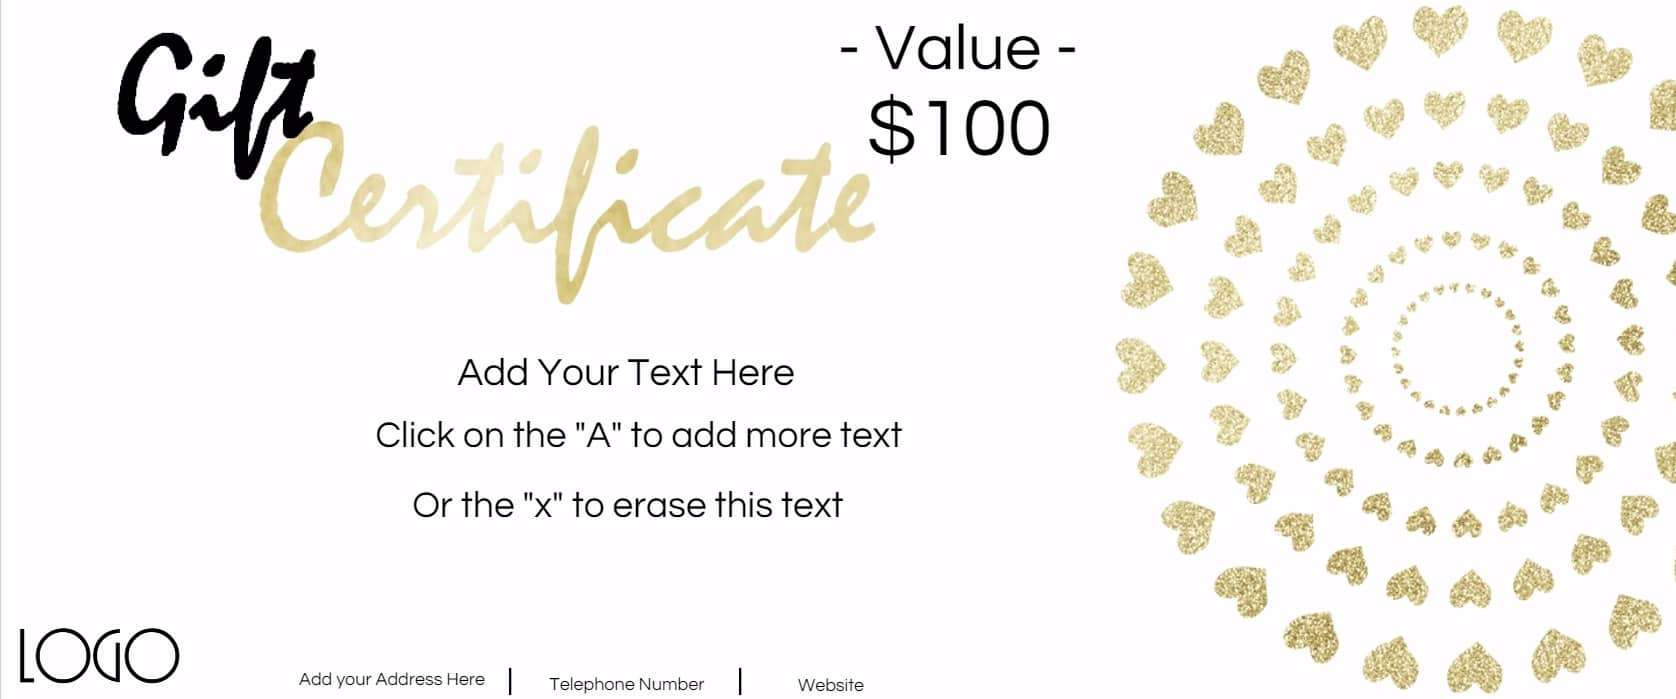 Gift certificate template with logo gold glitter hearts alramifo Gallery